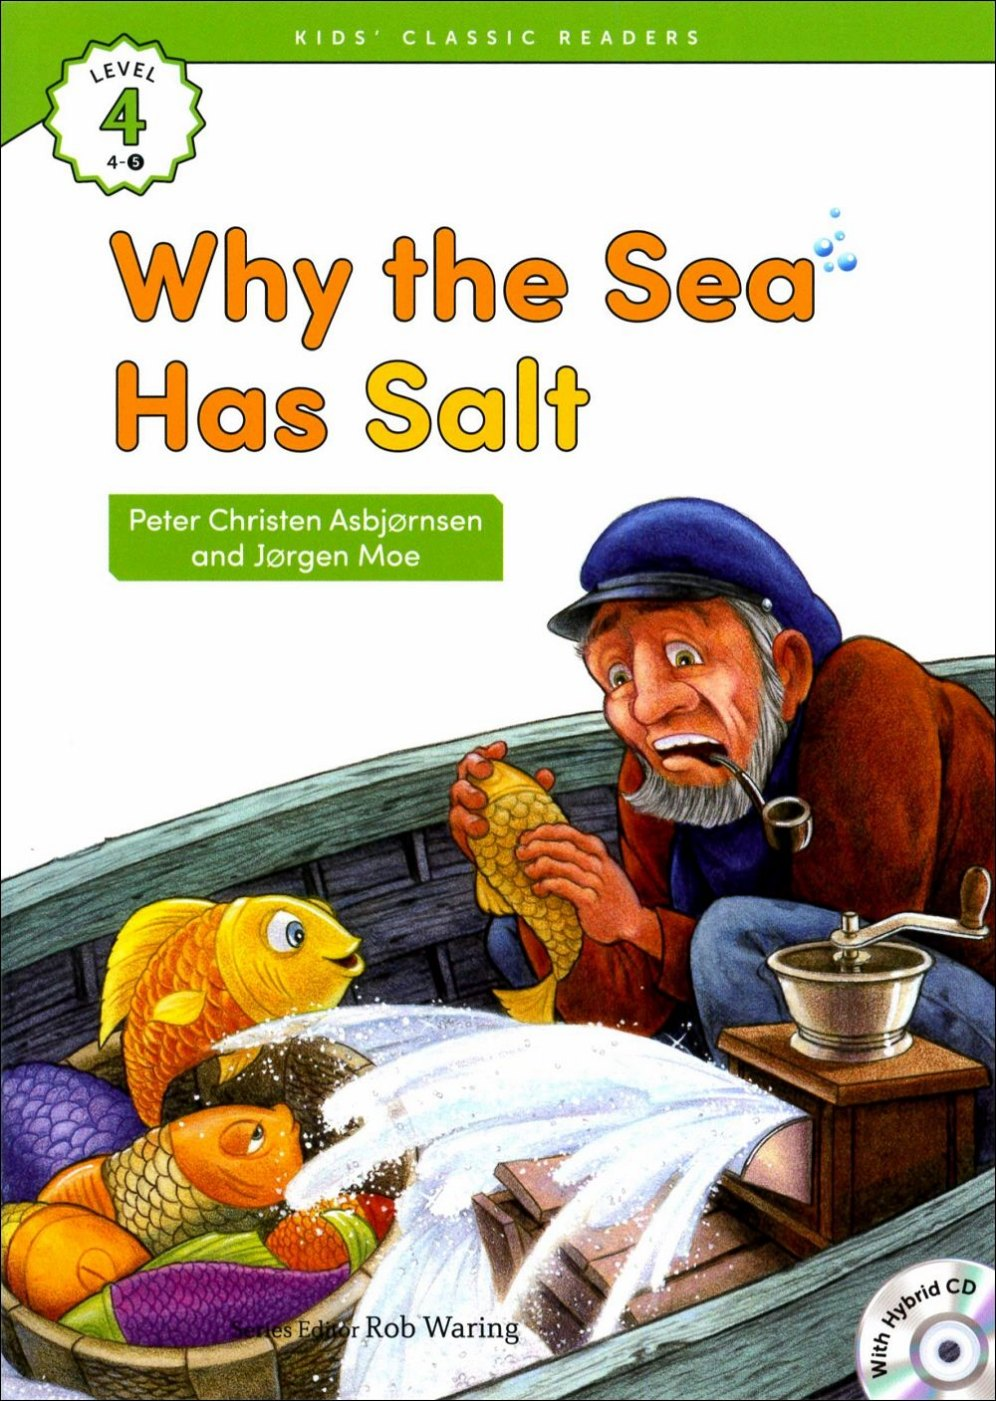 Kids' Classic Readers 4~5 Why the Sea Has Sal